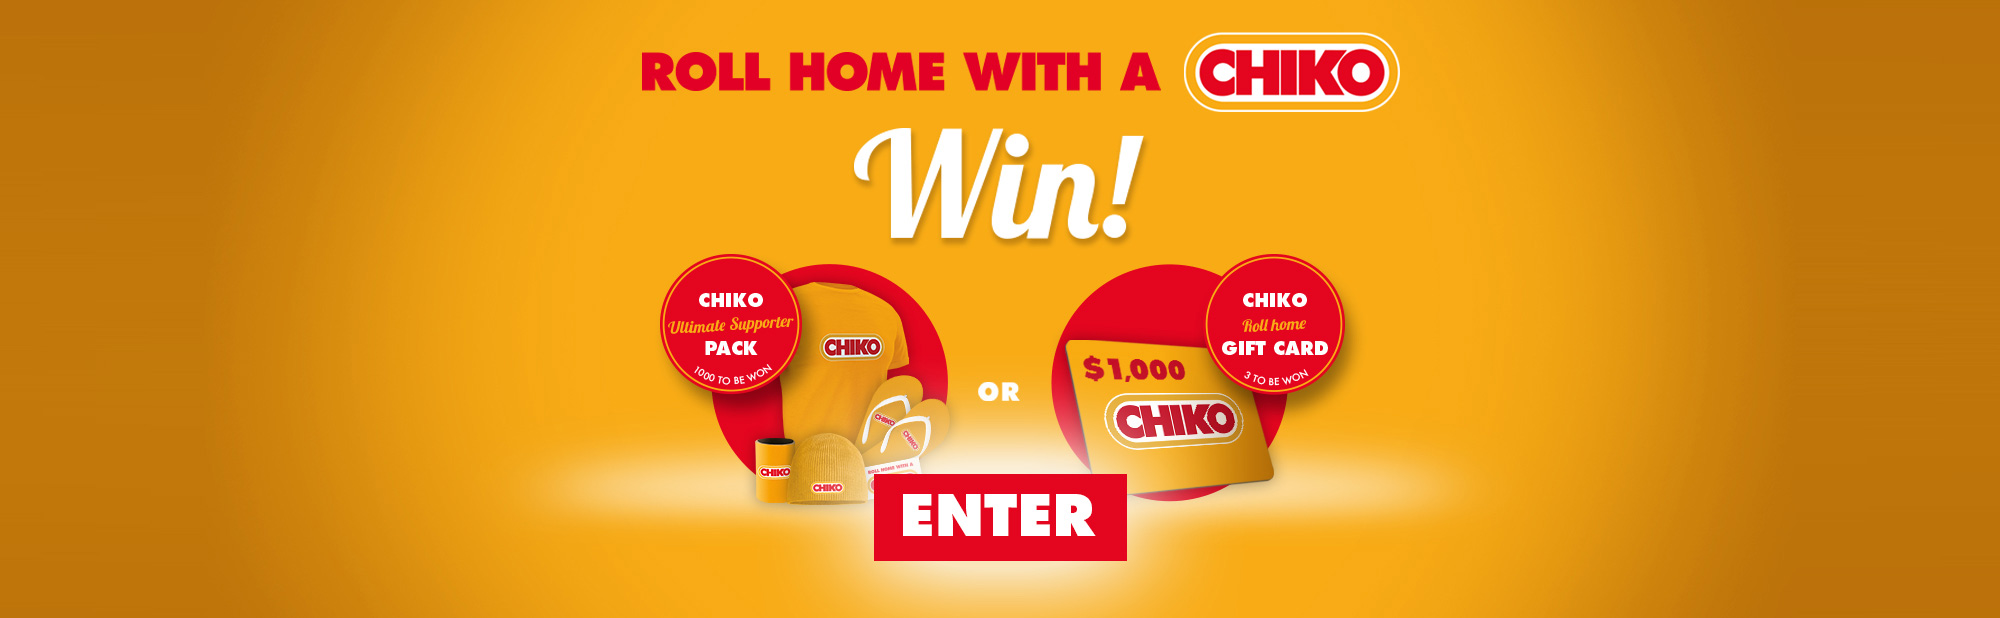 Roll home with a chiko